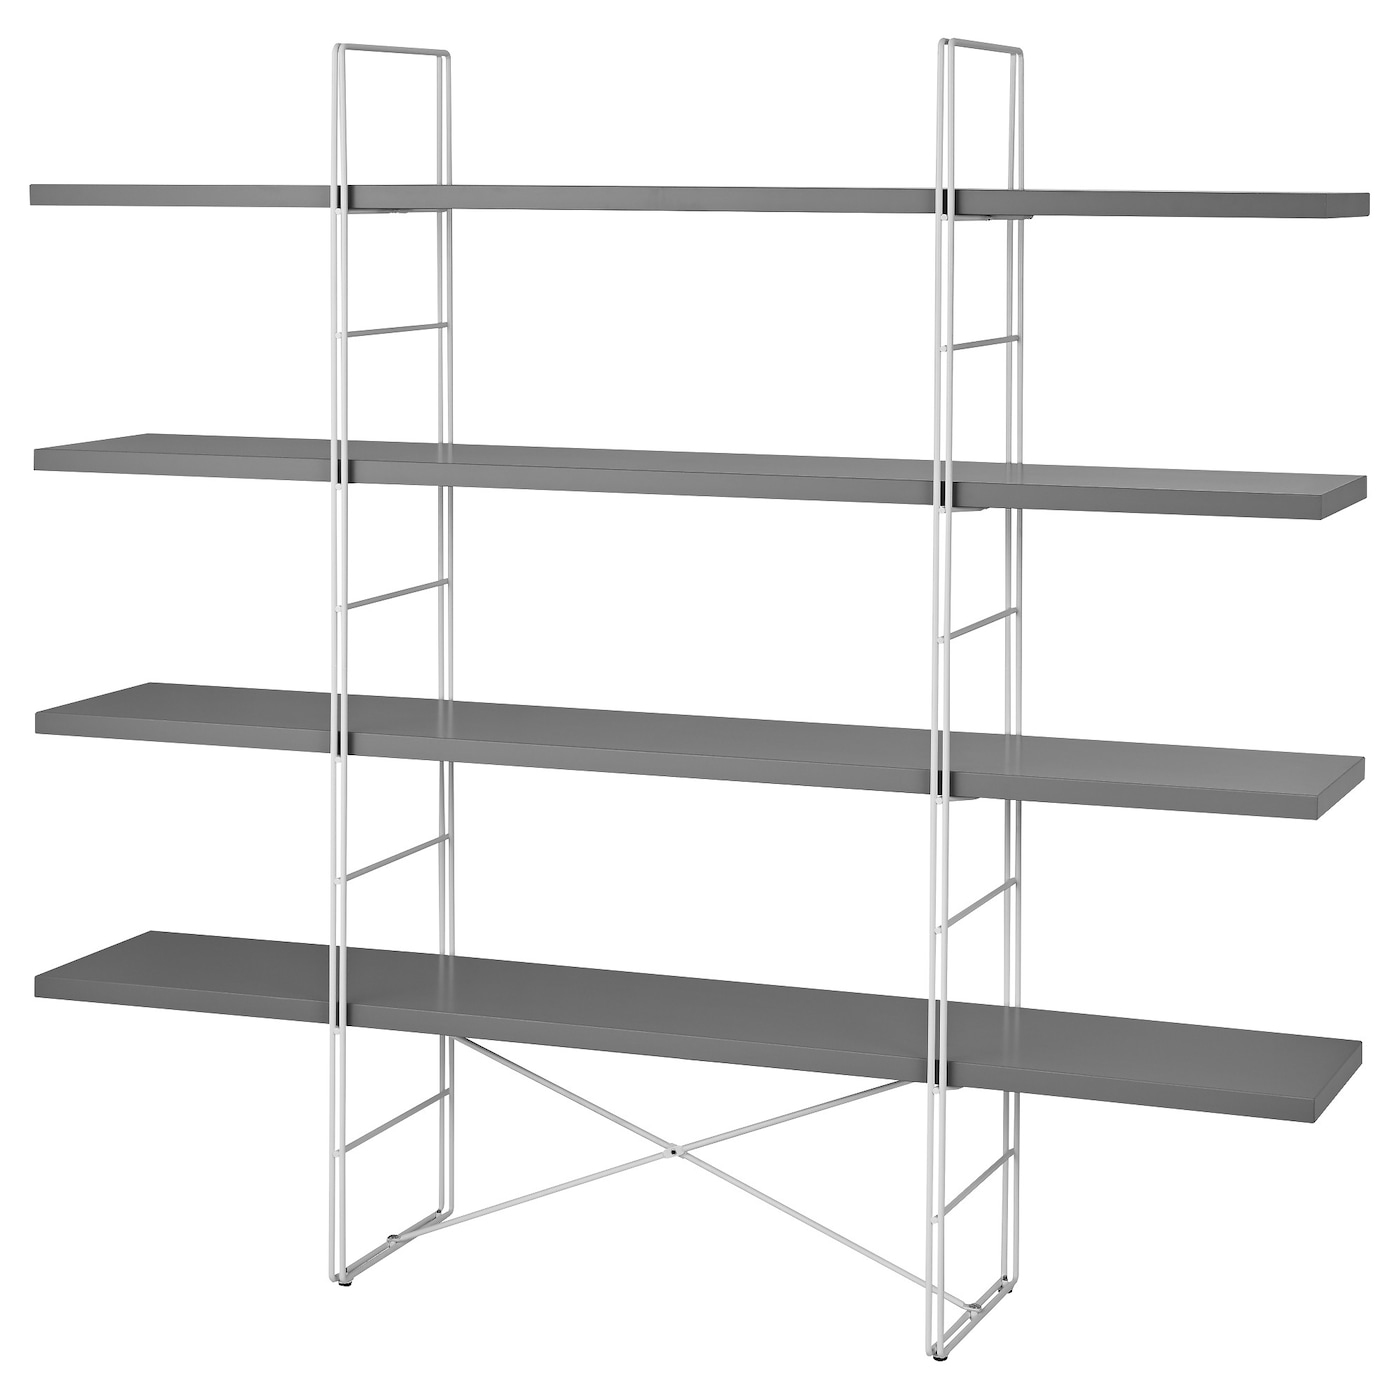 Ikea Enetri Shelving Unit Adjule Feet Stands Steady Also On An Uneven Floor Easy